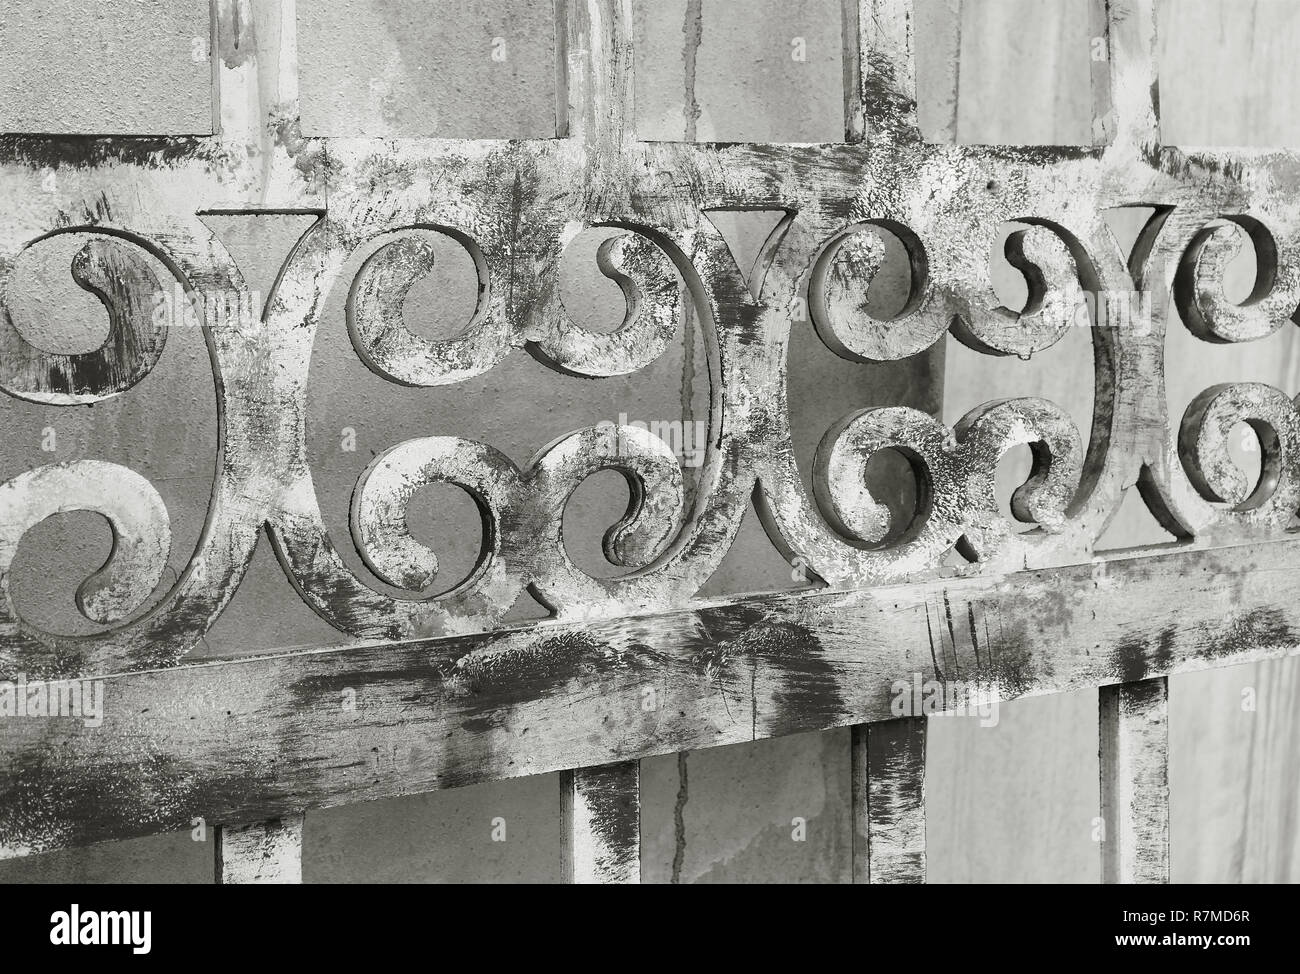 Diminishing perspective of an old wooden decorative fence in monotone - Stock Image